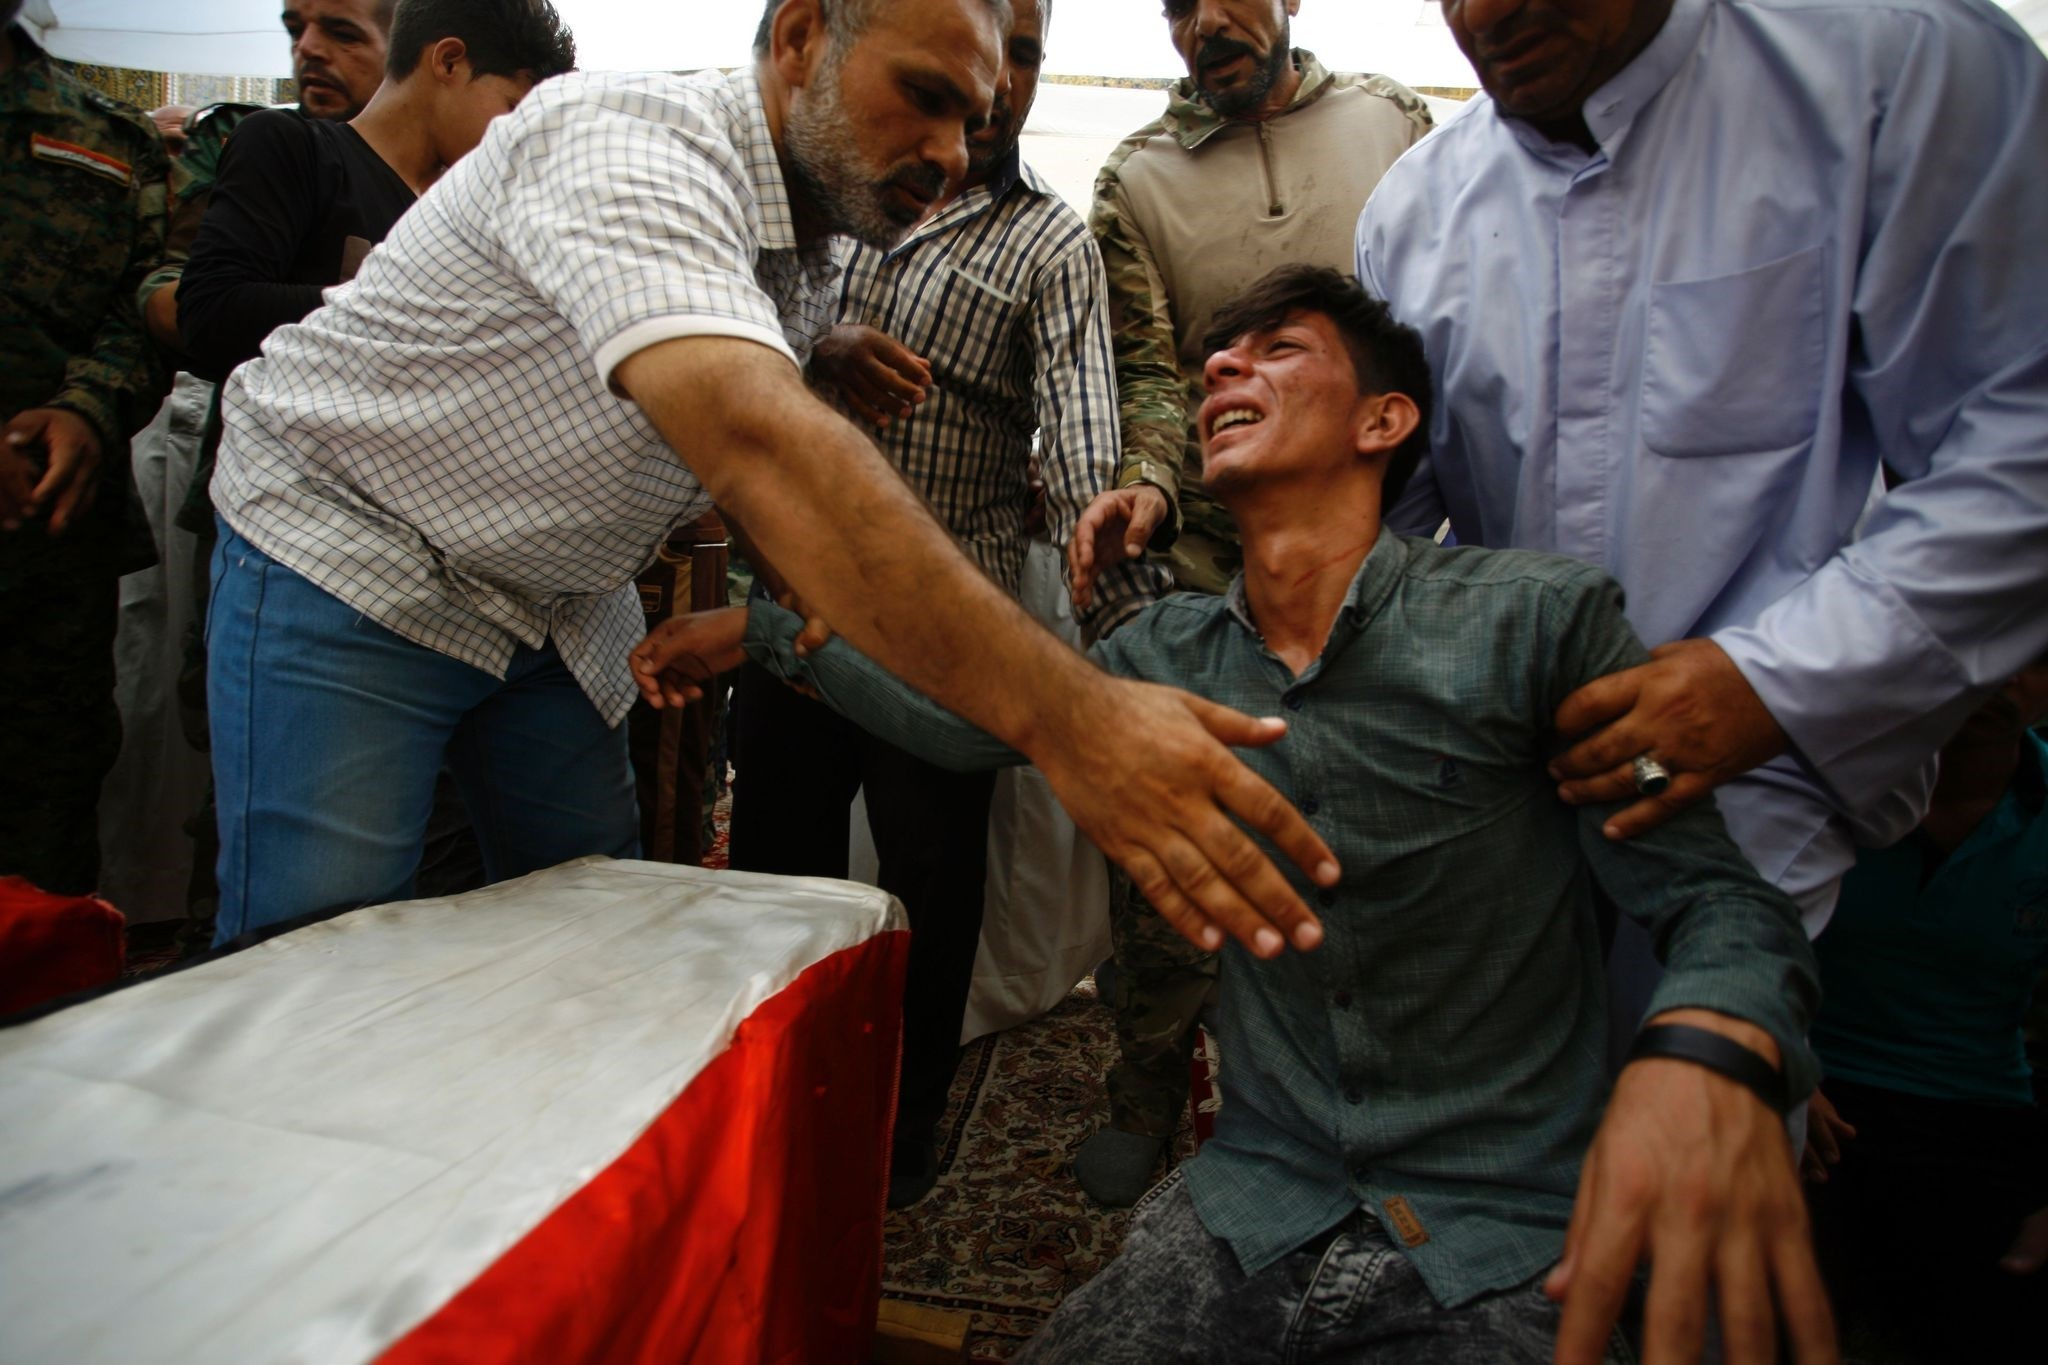 Iraqis mourn over the coffins of Shiite students who were killed in the Khalidiyah area of Iraq's Anbar province fighting alongside pro-gov't forces in the battle against Daesh. (AFP Photo)